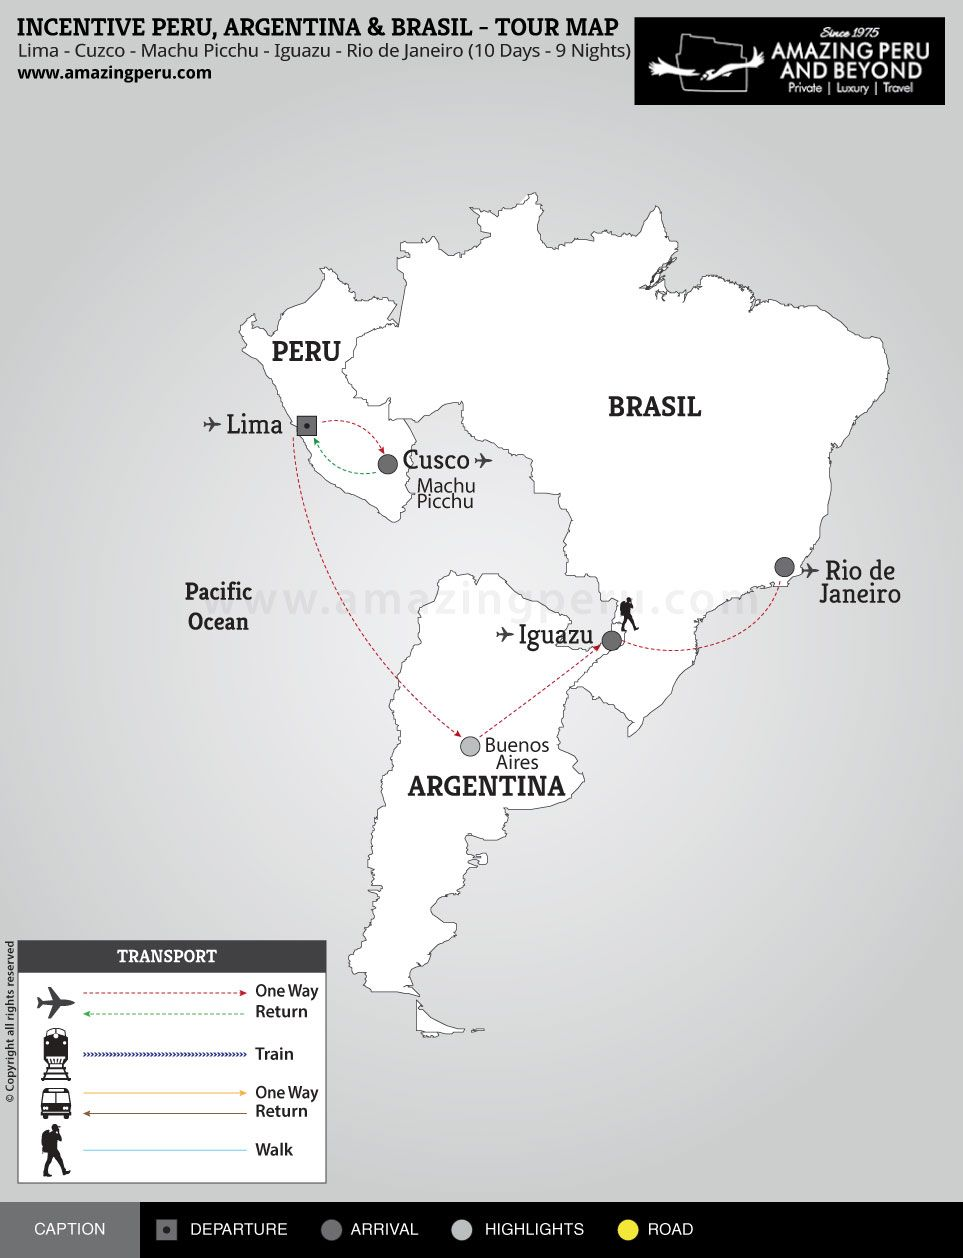 Incentive Peru, Argentina & Brazil Tour - 10 days / 9 nights.